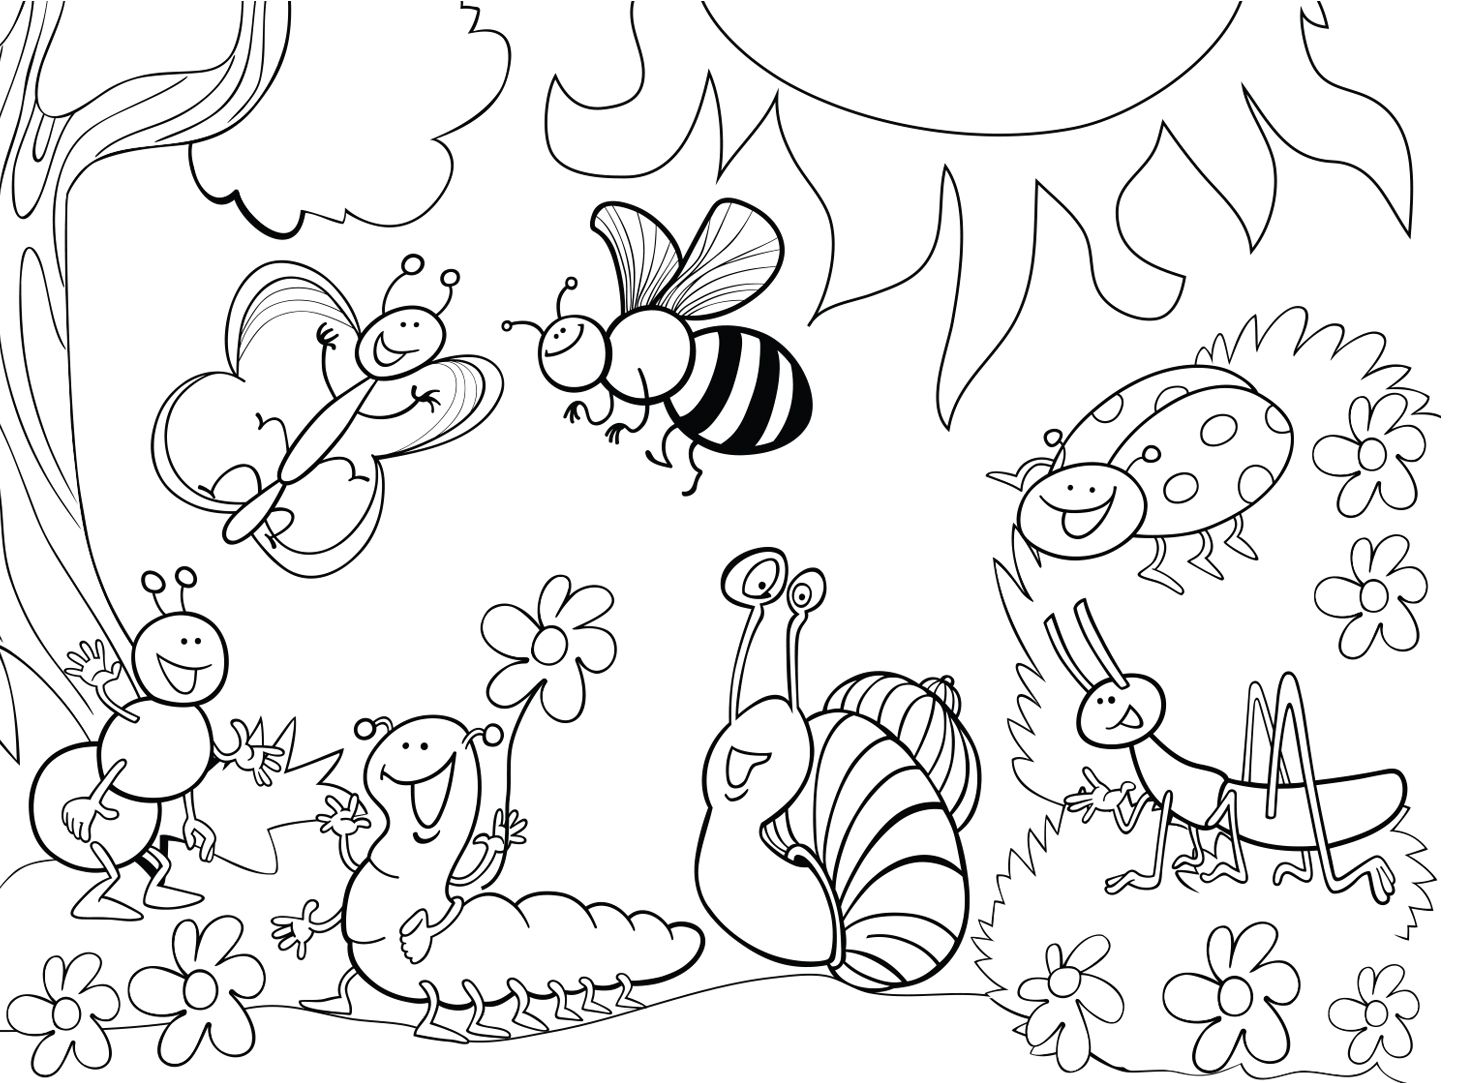 Superbe Insect Coloring Page Impressive Printable Insect Coloring Pages With Bugs  Coloring Free Coloring Pages For Kids